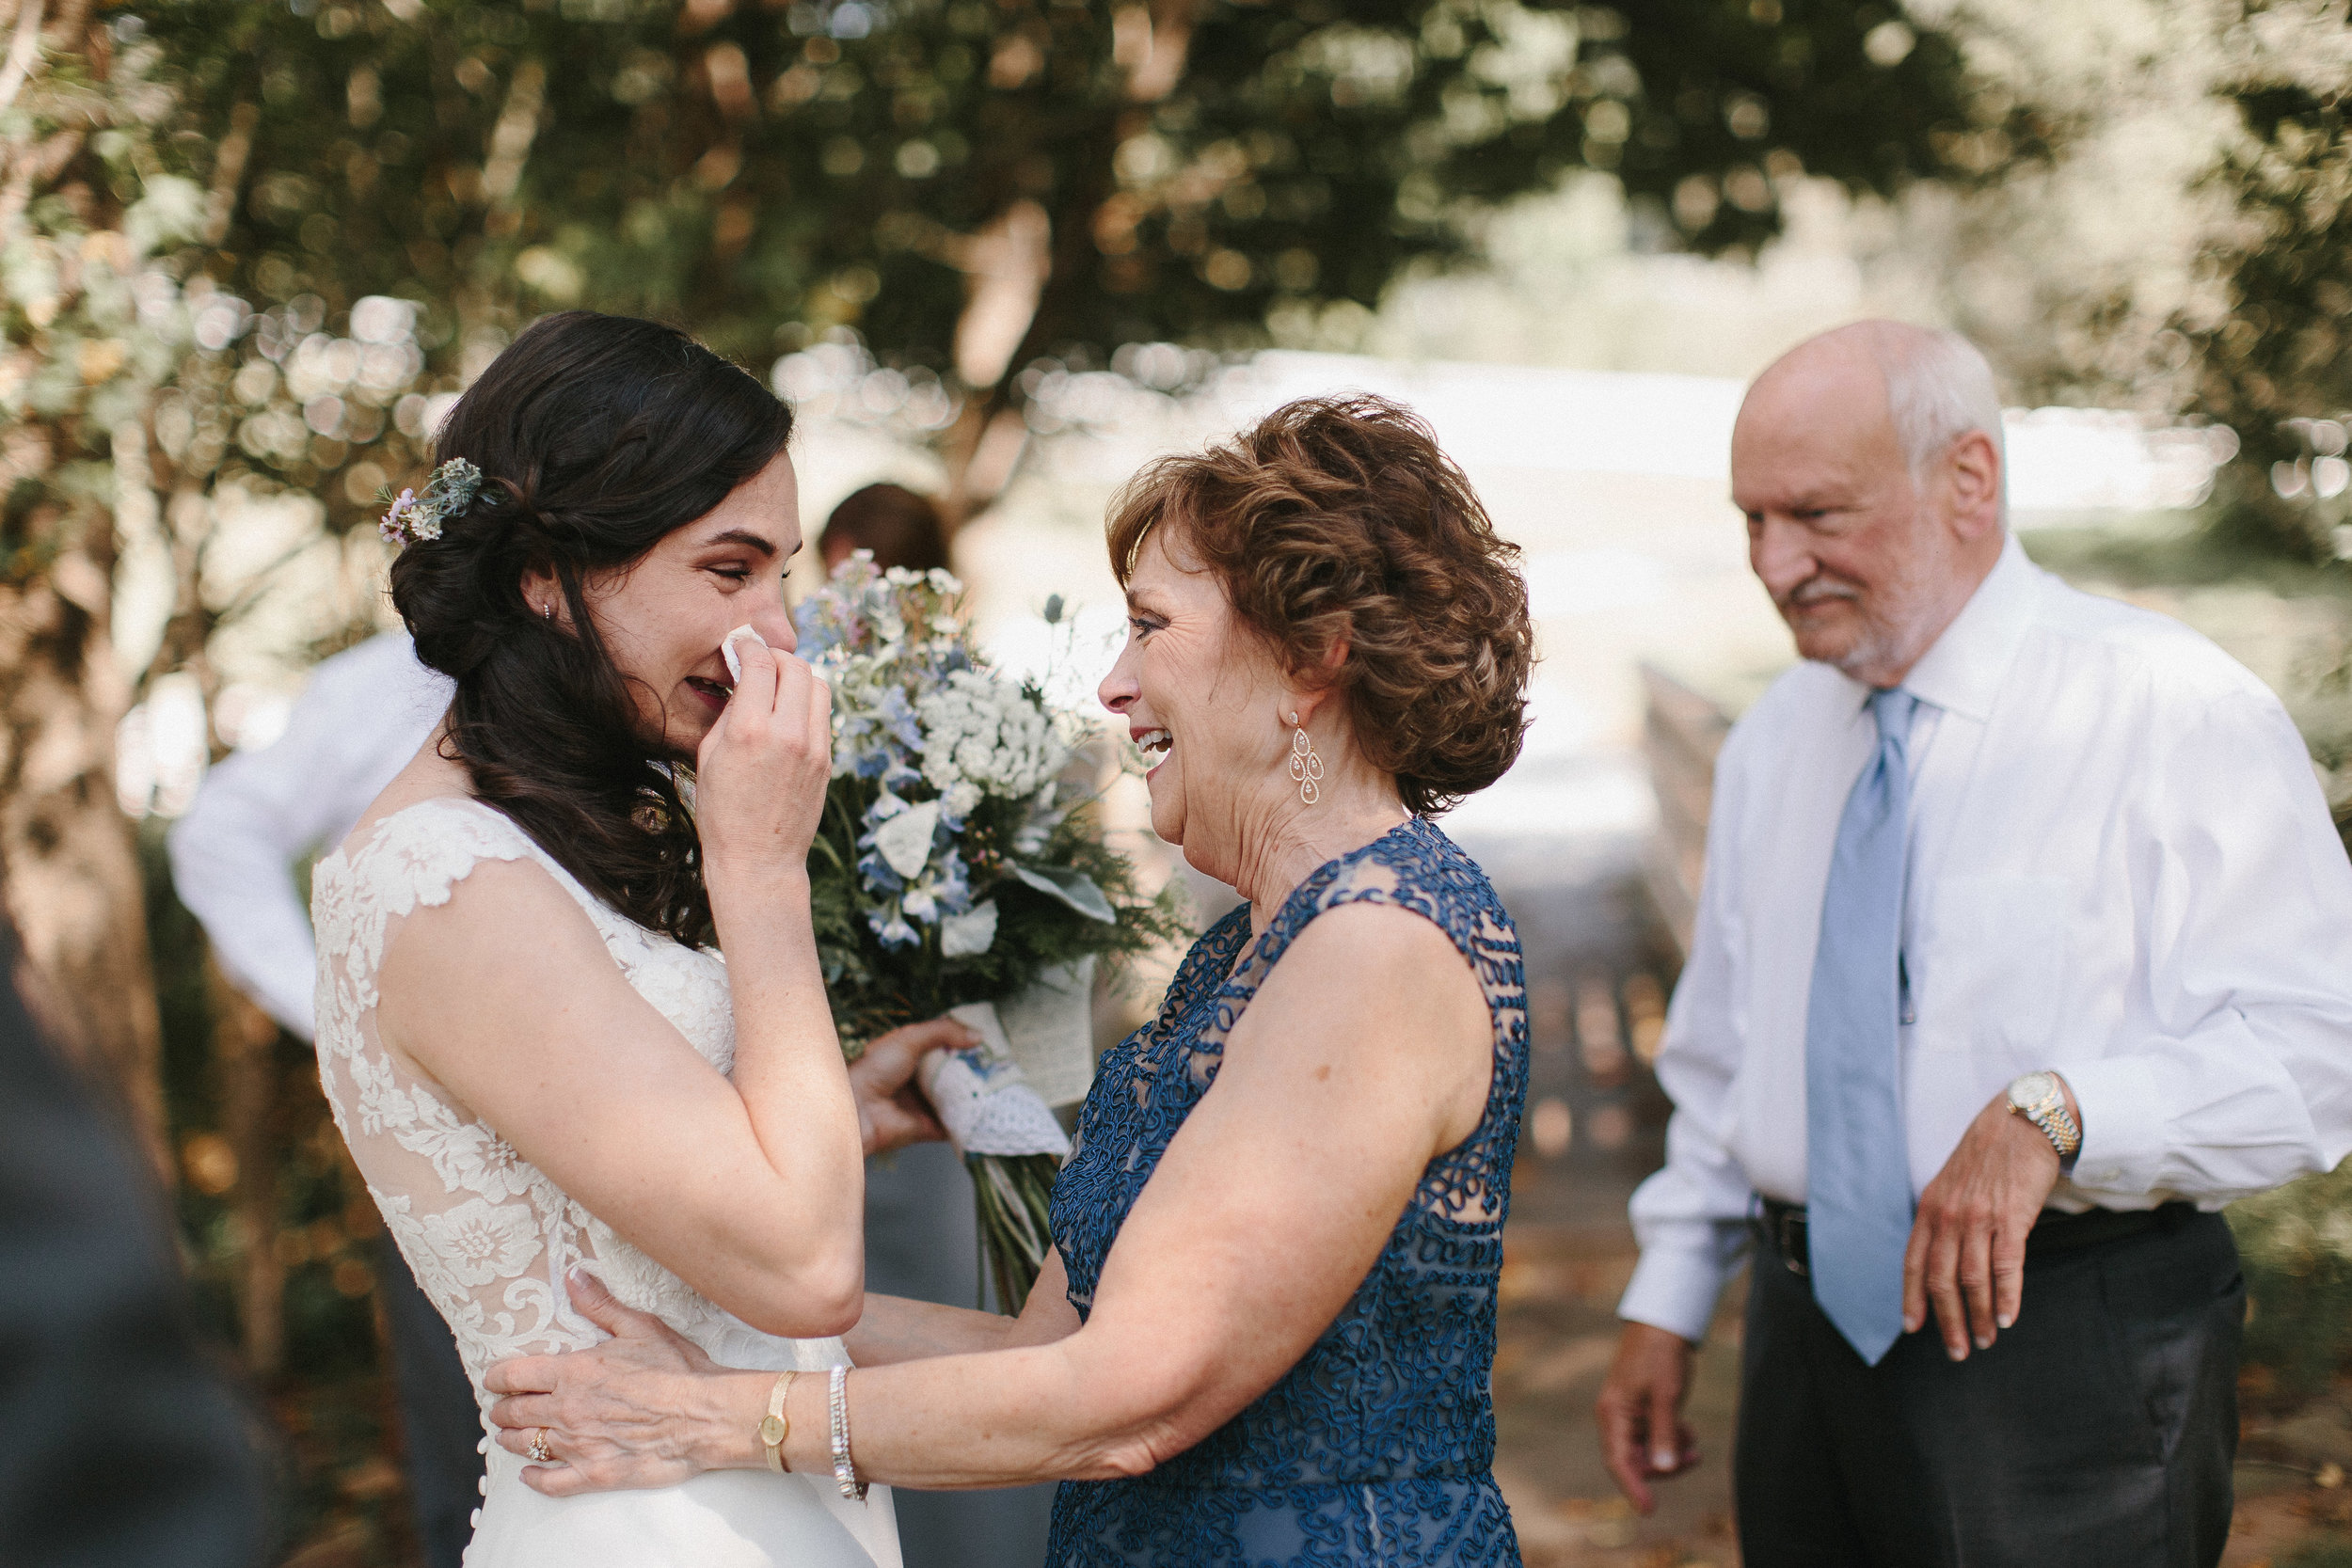 cleveland_georgia_mountain_laurel_farm_natural_classic_timeless_documentary_candid_wedding_emotional_photojournalism_river_west_1300.jpg